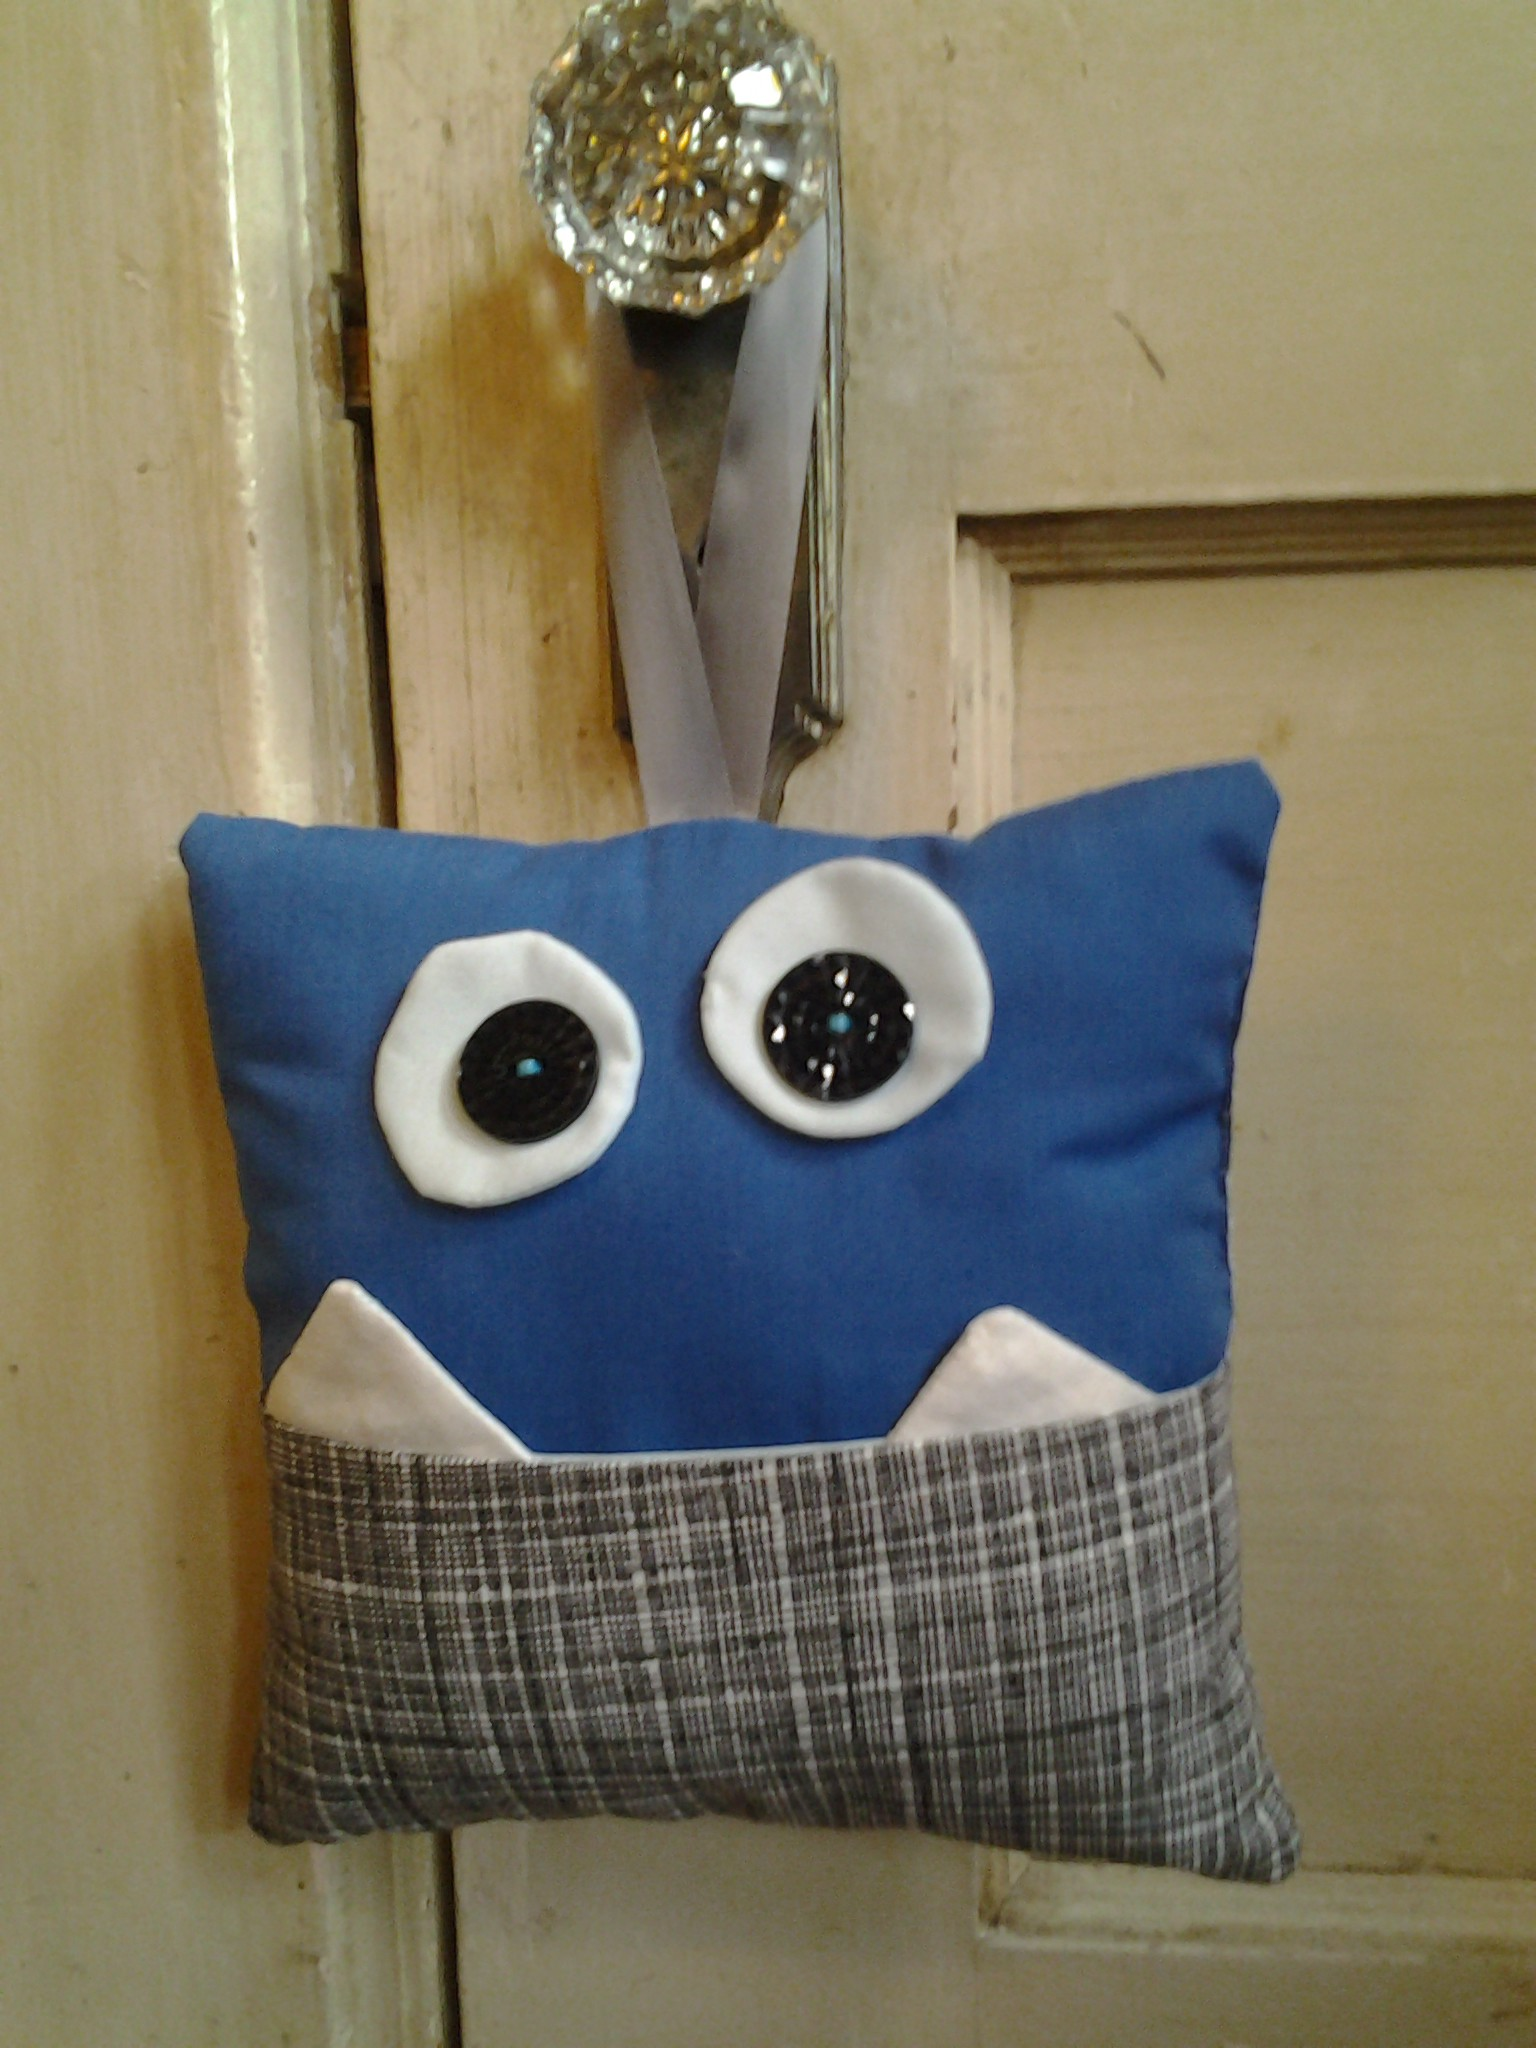 Voila A Tooth Fairy Monster Pillow Is Made